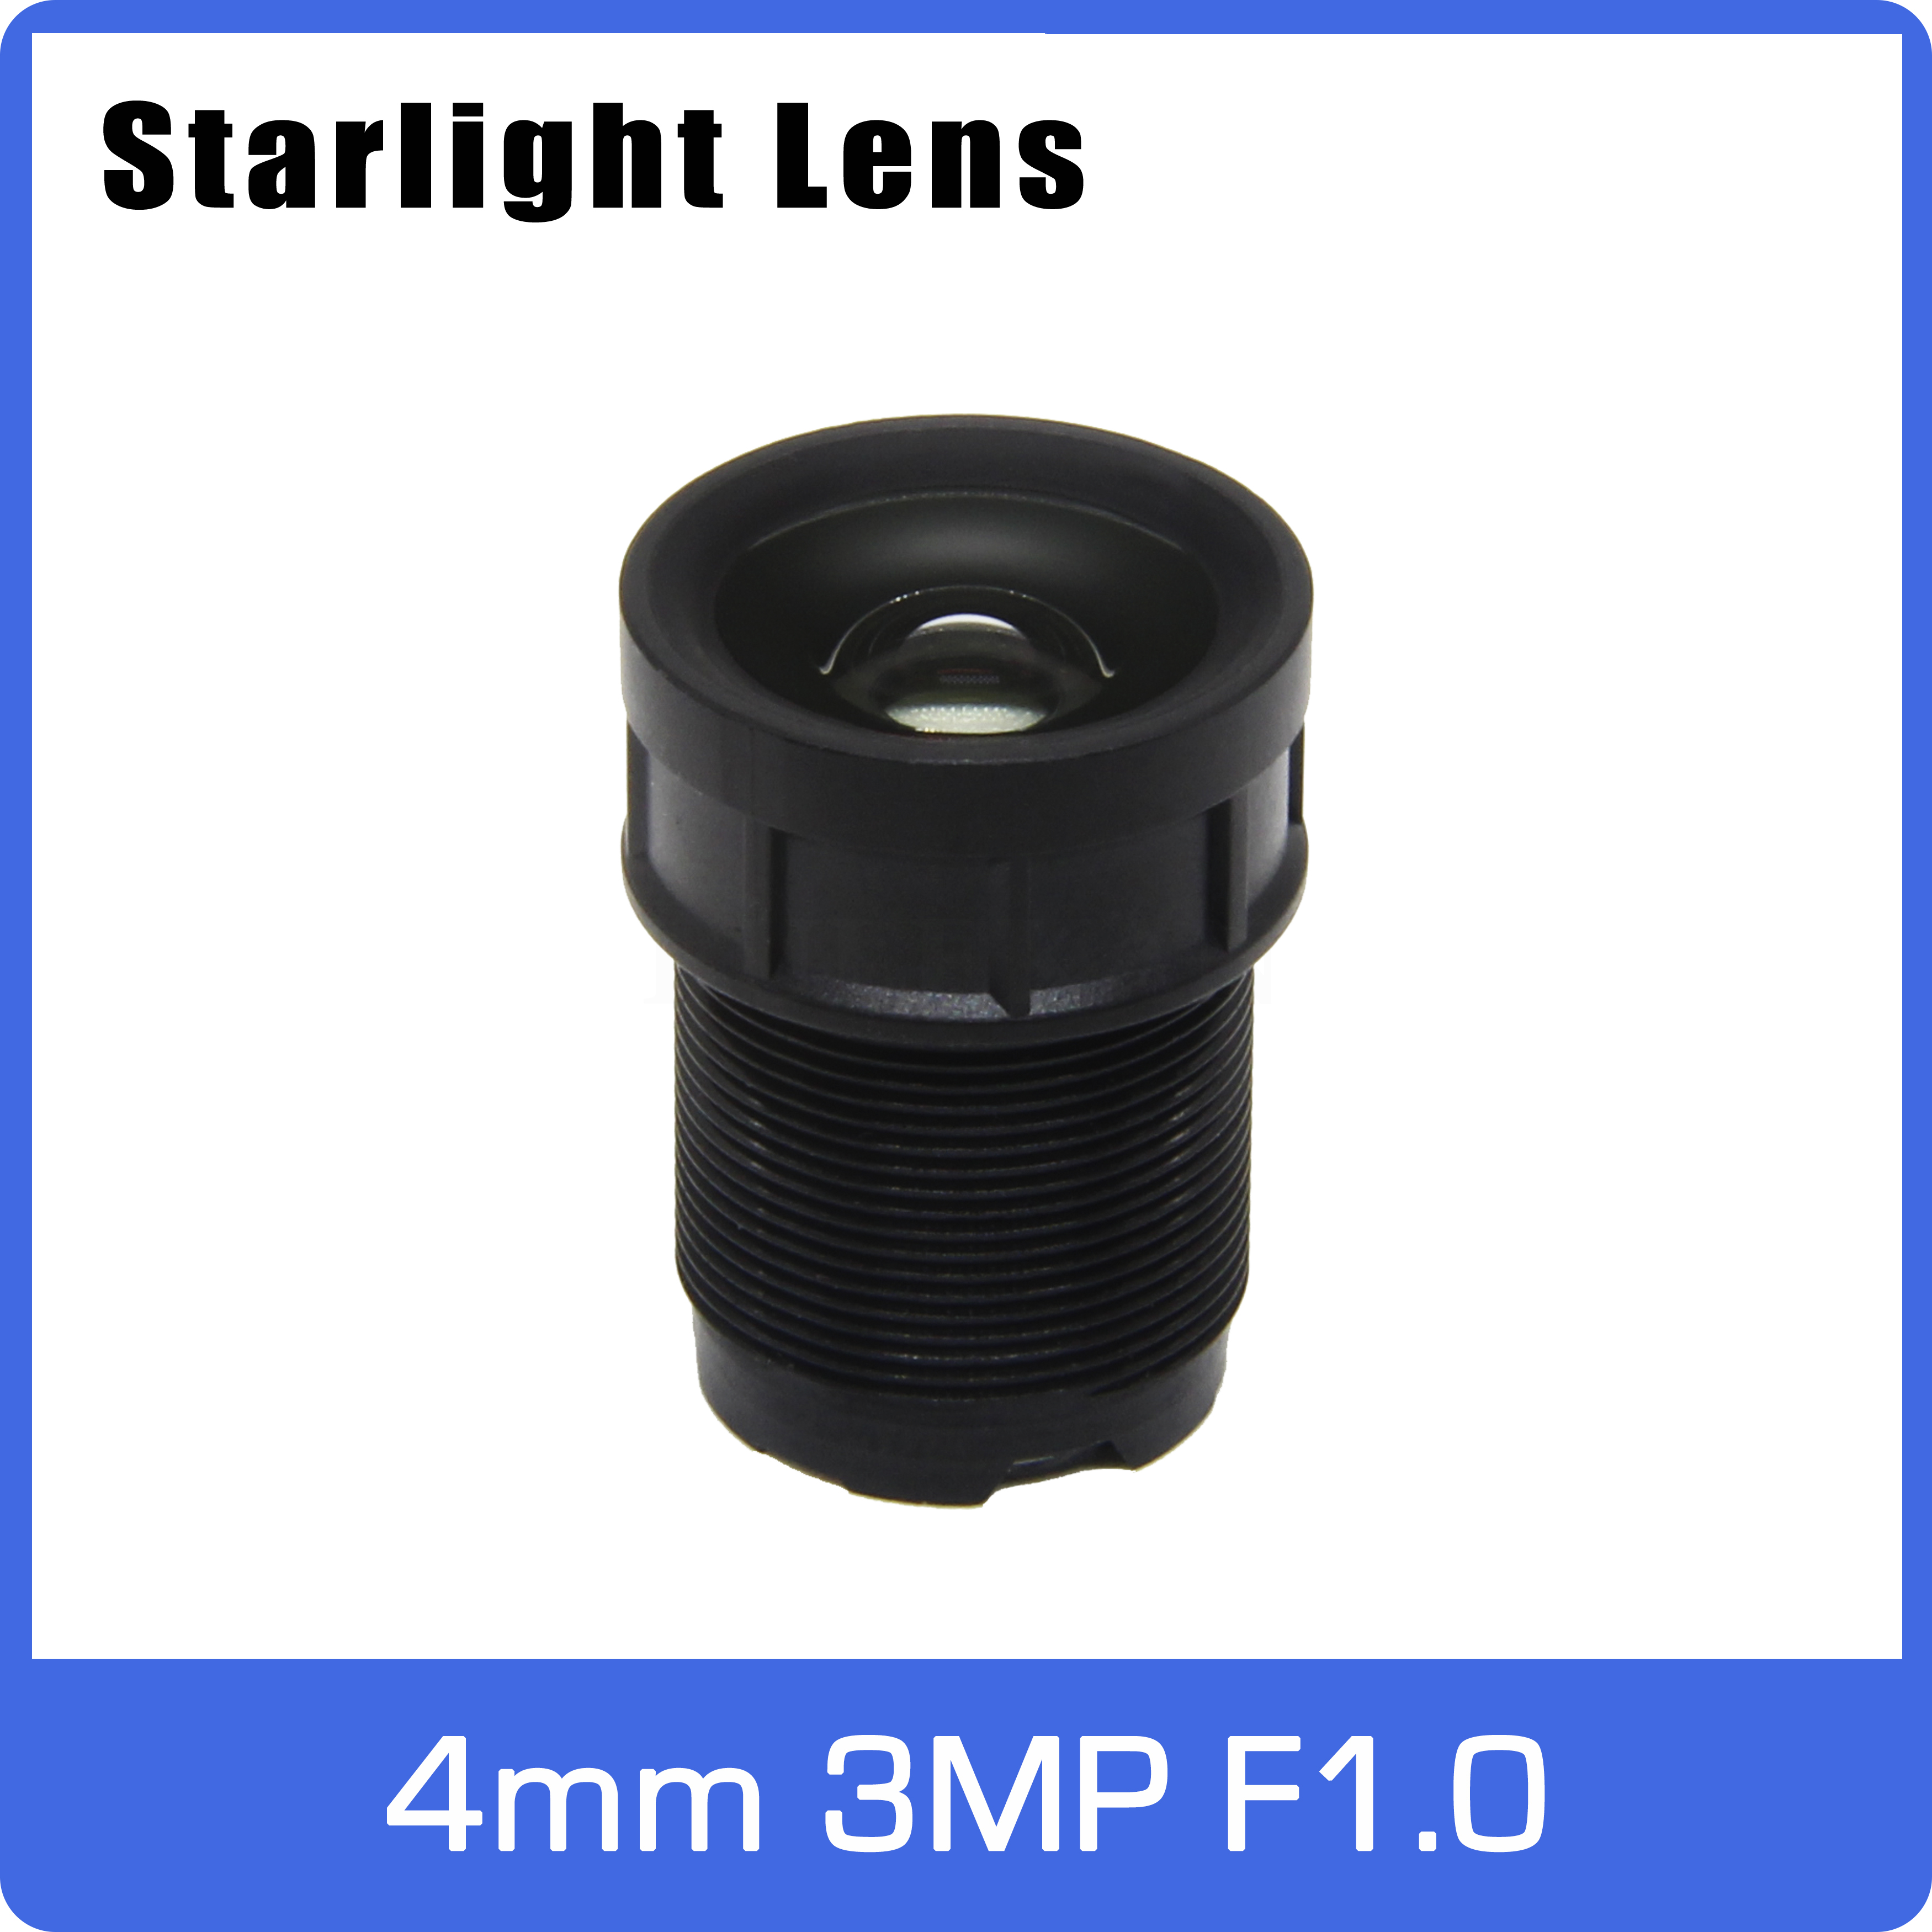 Super Starlight Lens Aperture F1.0 3MP 4mm For SONY IMX290/291/307/327 Ultra Low Light  AHD IP Camera Free Shipping